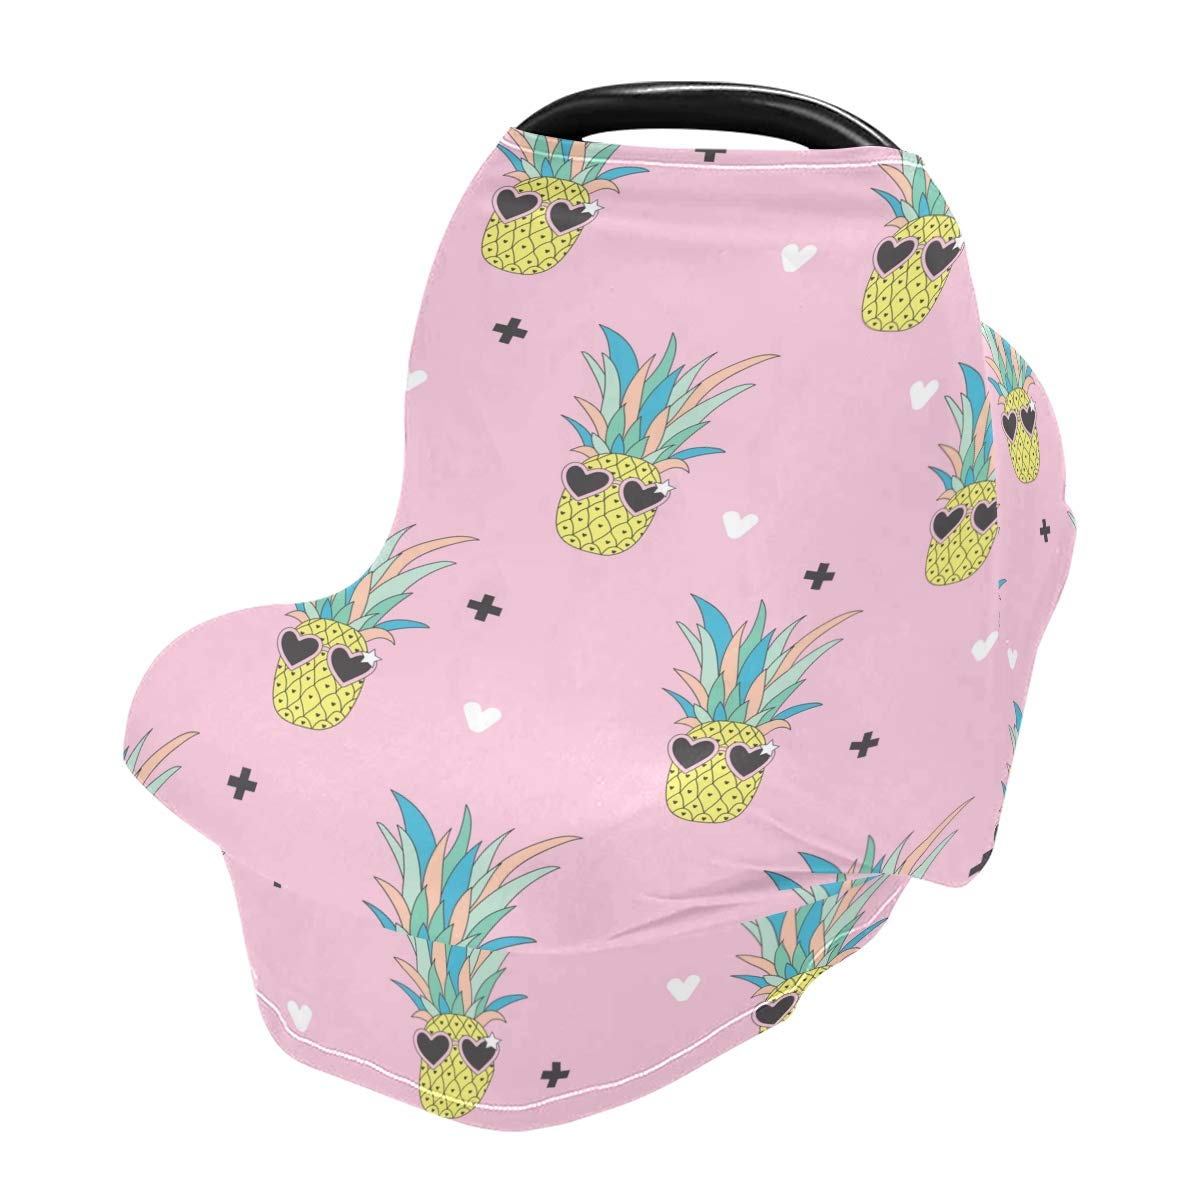 Nursing Cover Loving Eyes Pineapple Breastfeeding Soft Carseat Canopy Multi Use for Baby Car Seat Covers Canopy Shopping Cart Cover Scarf Light Blanket Stroller Cover